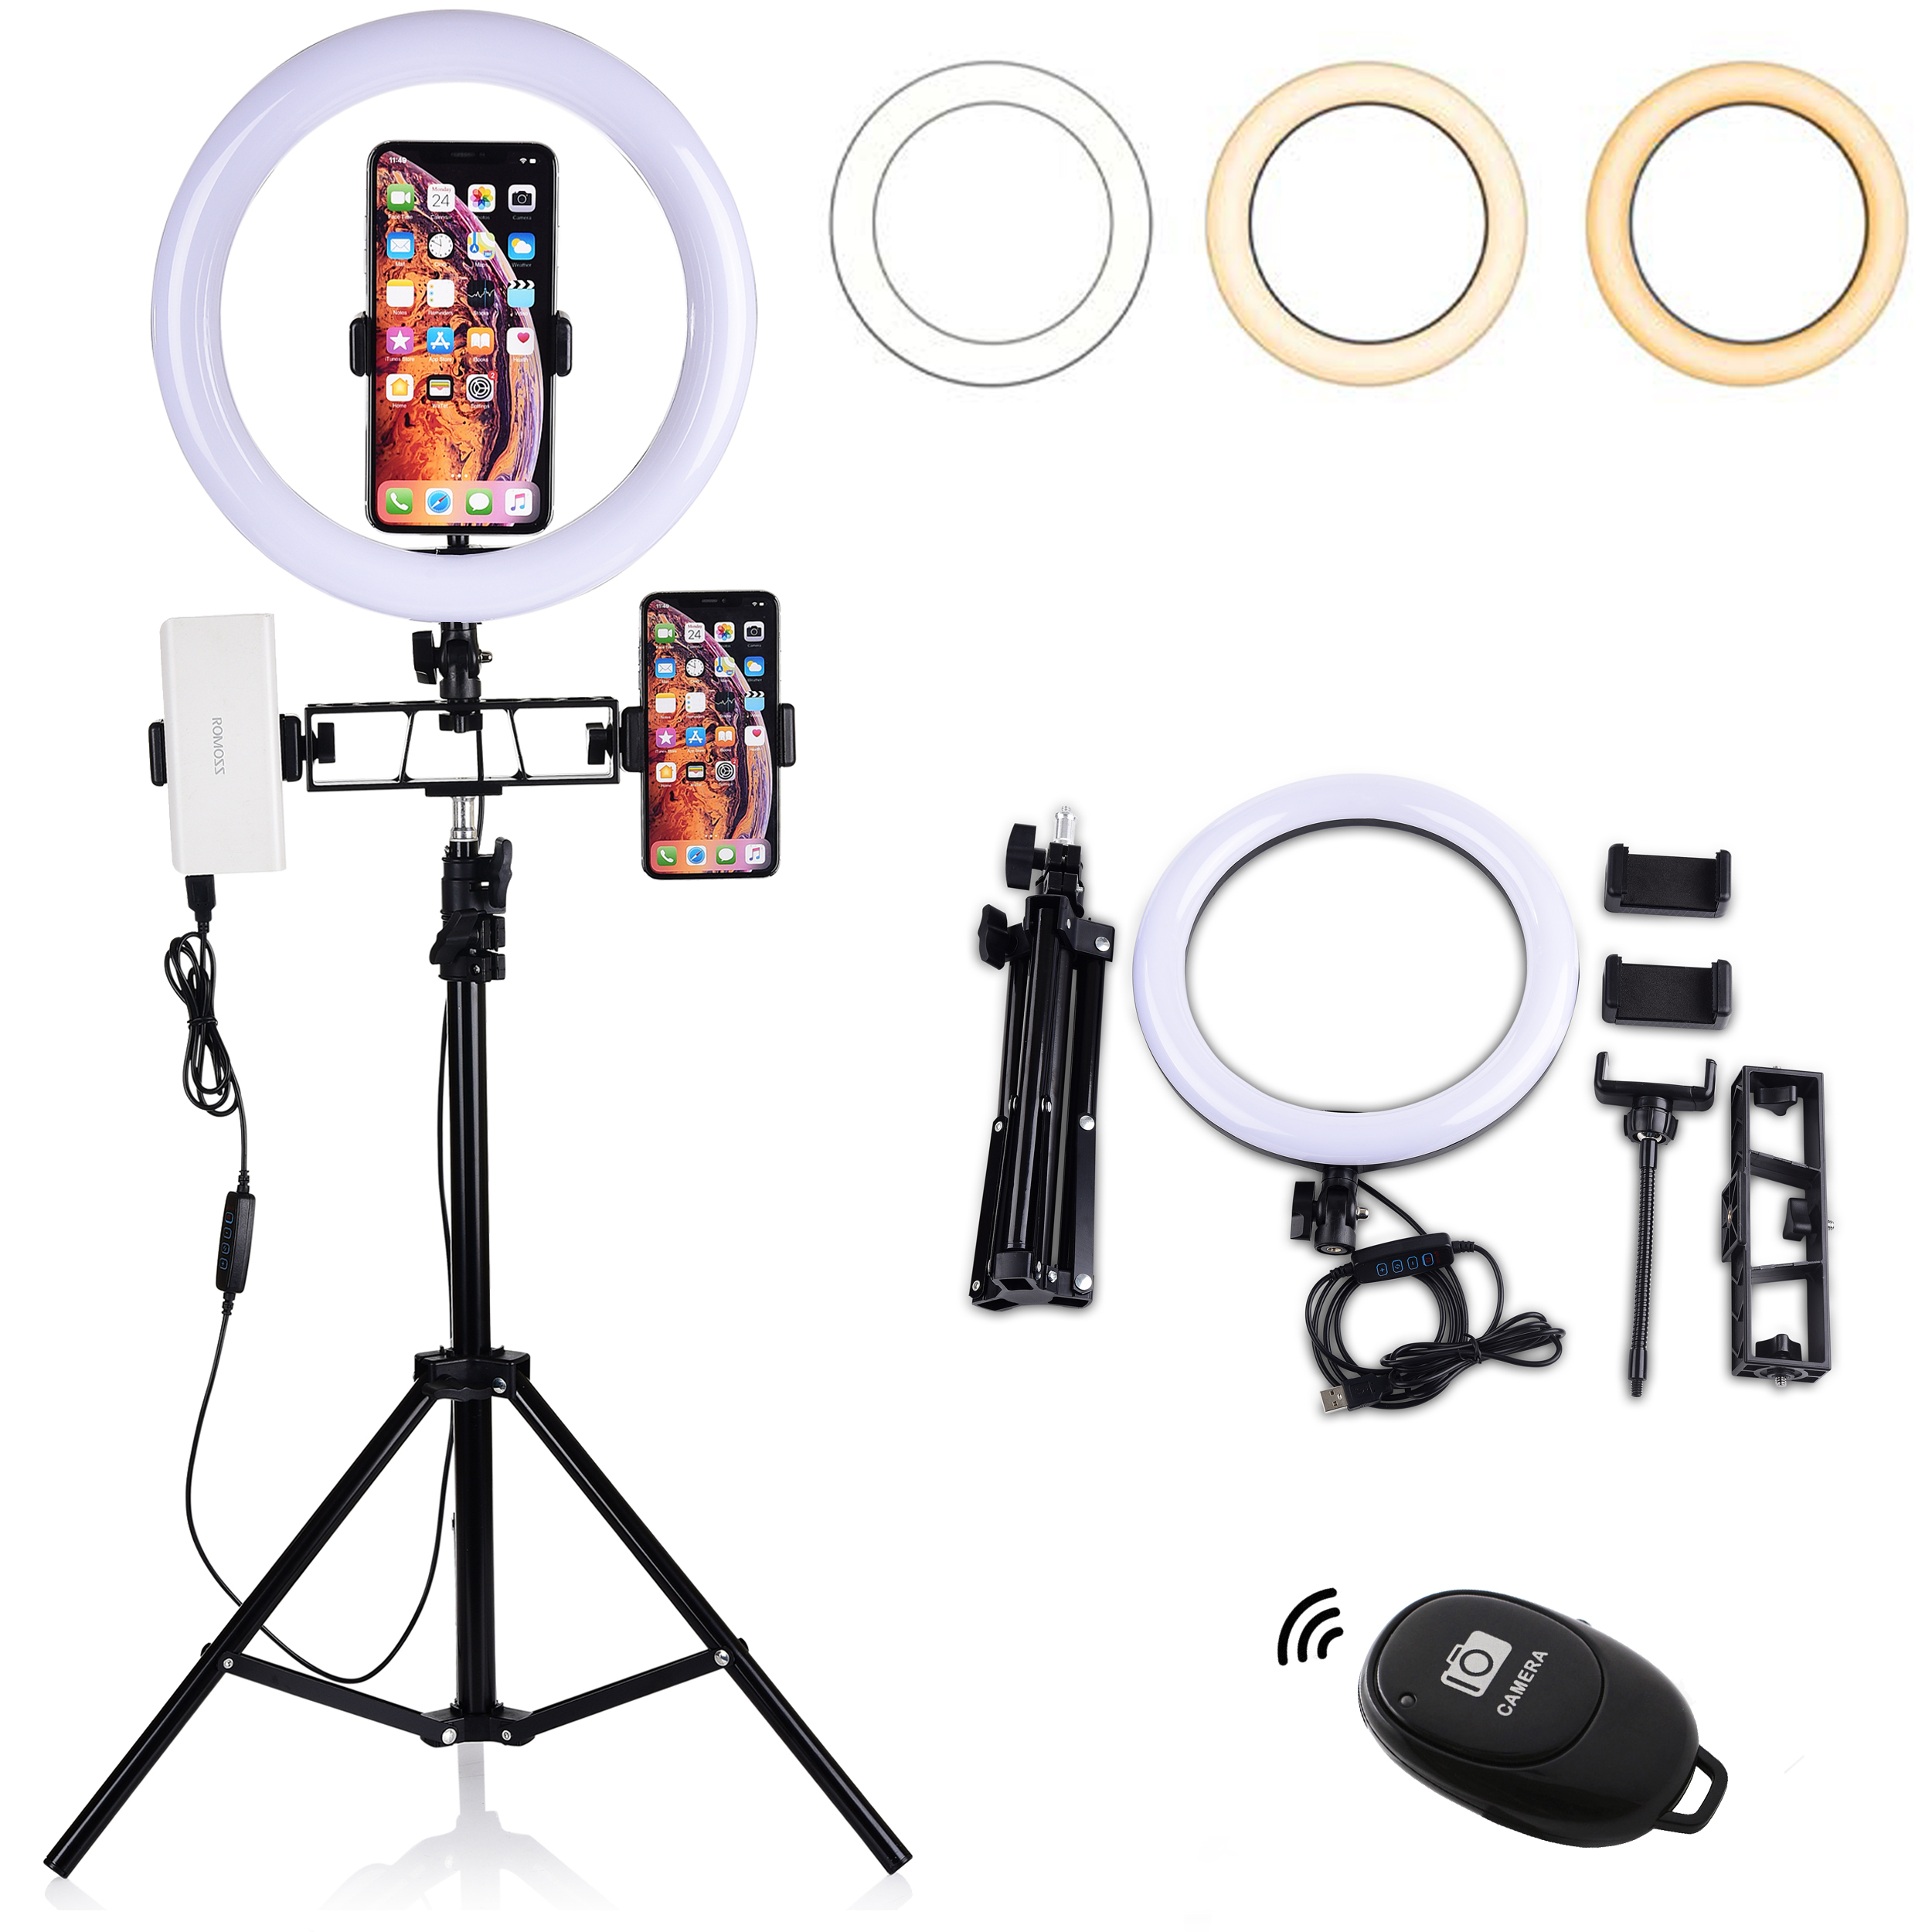 10/' 10 LED Ring Light with Tripod Stand Selfie Stick /& Cell Phone Holder Ring lamp for Live Stream YouTube Video Makeup Vlog Photography Compatible with iPhone Android